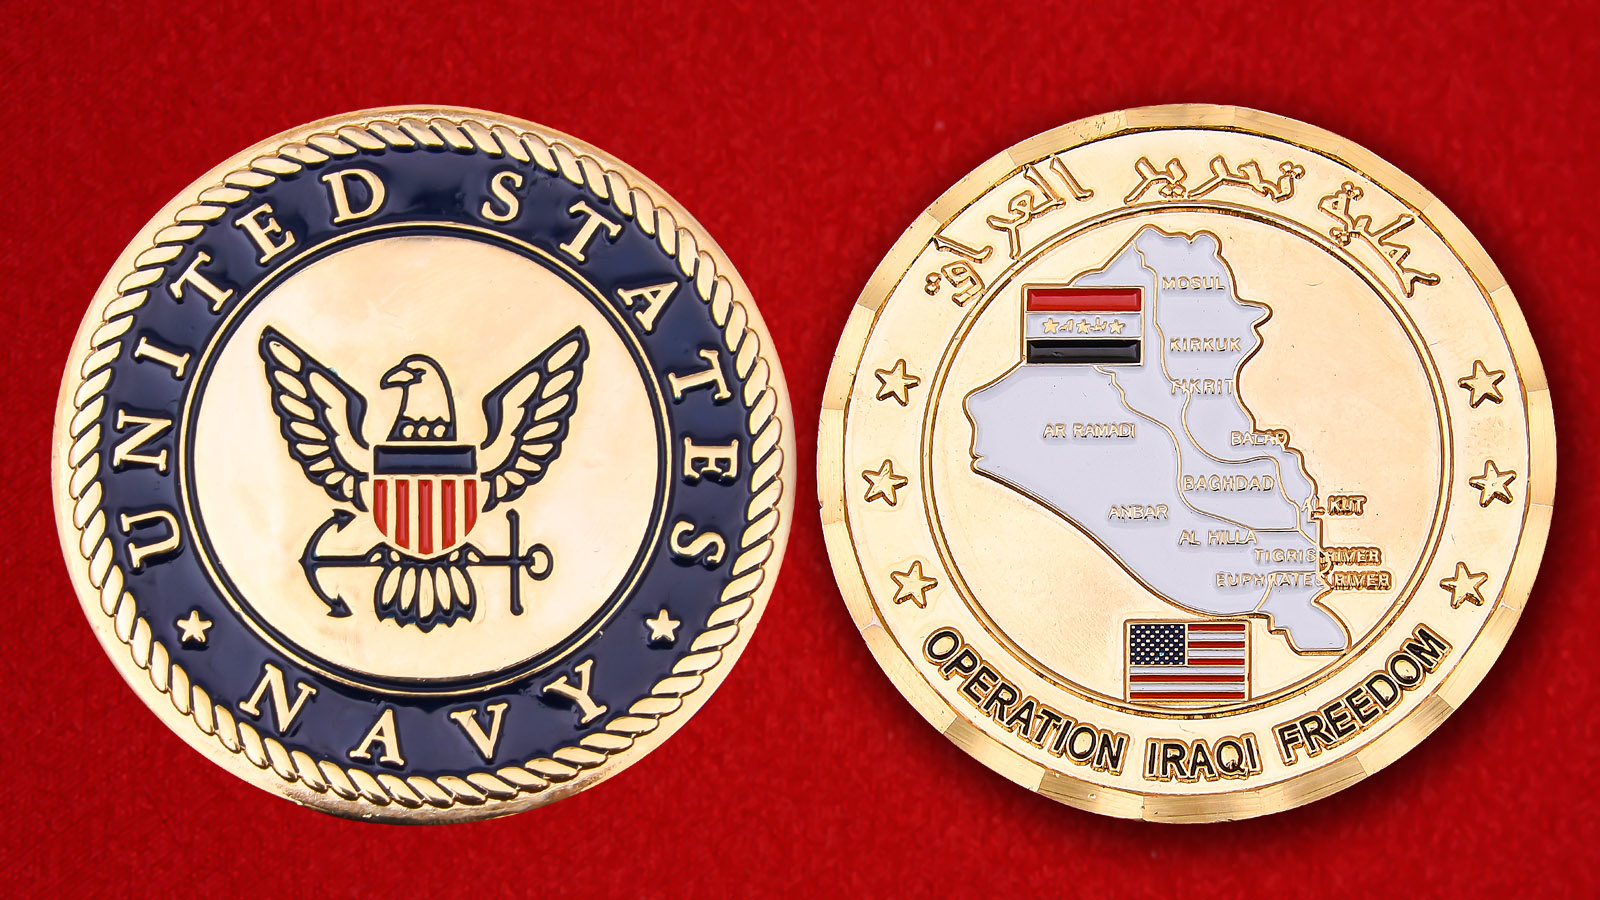 US Navy Operation Iraqi Freedom Challenge Coin